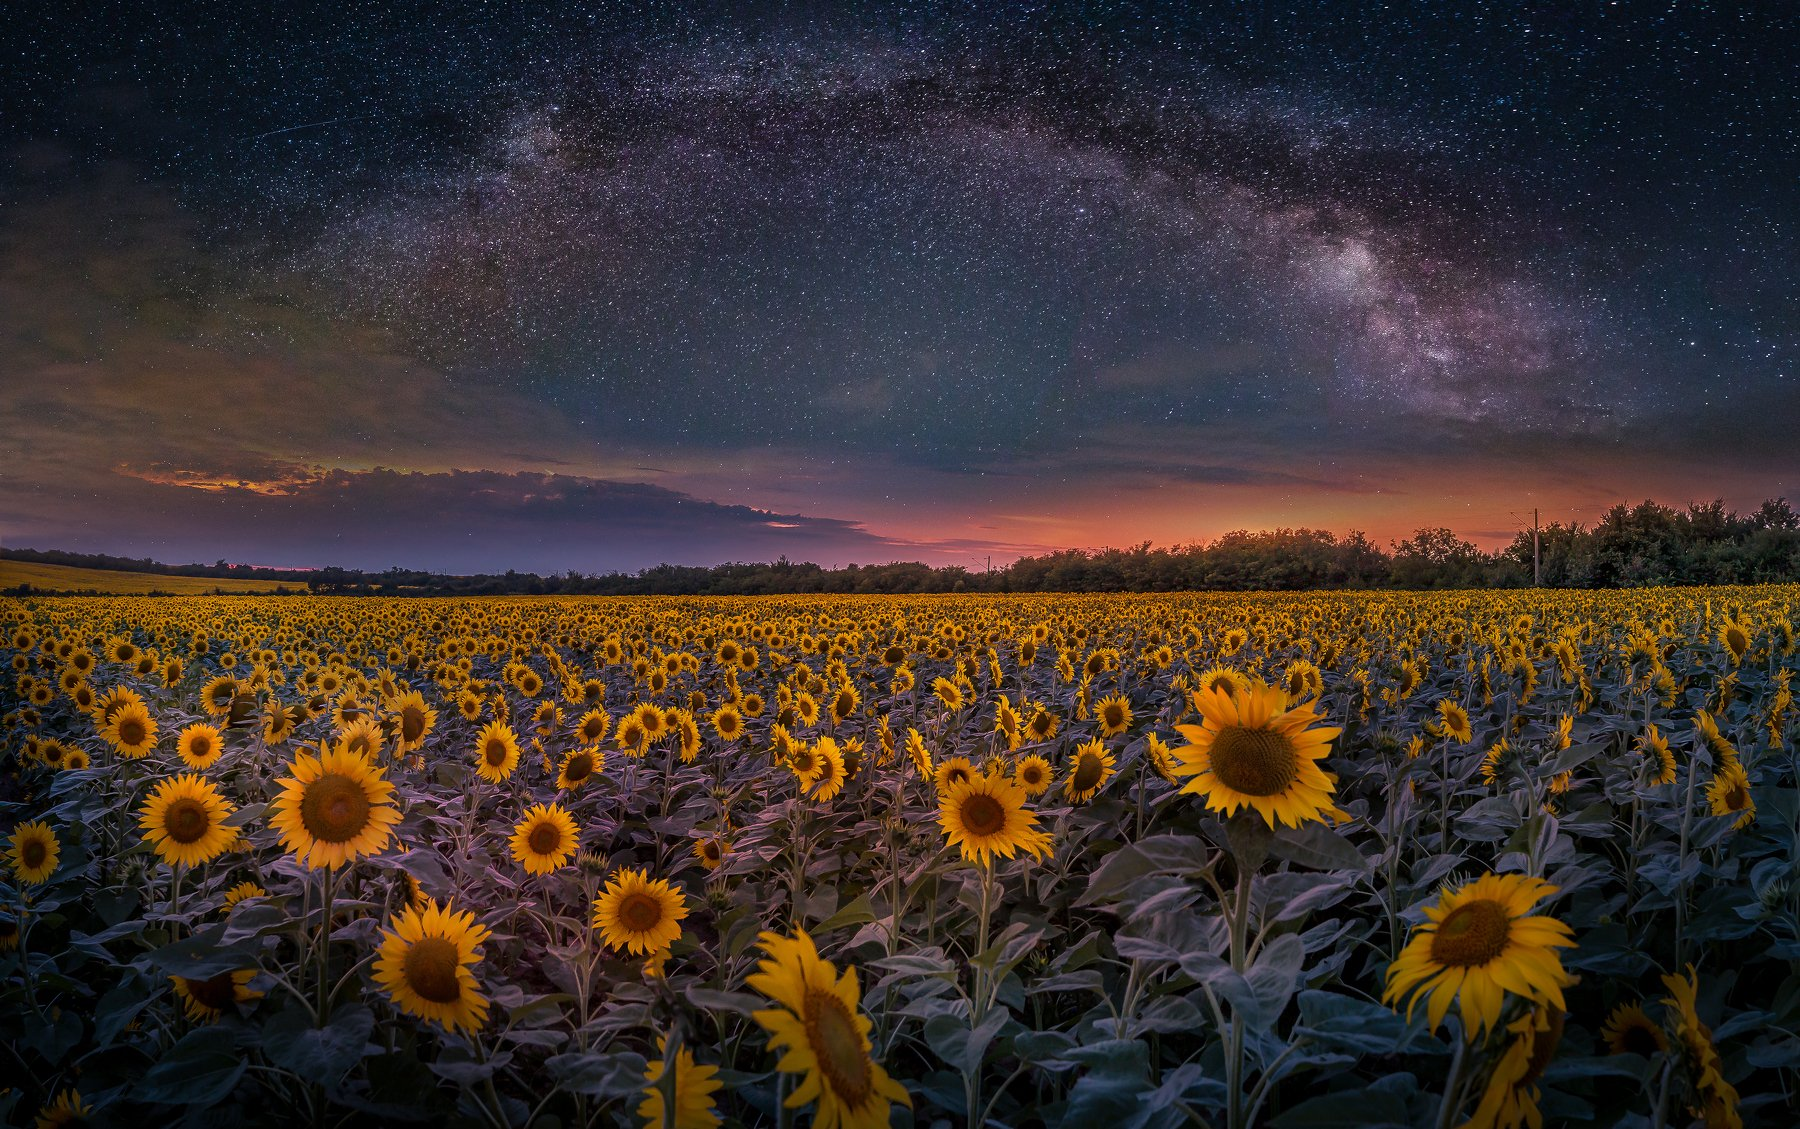 astrophotography, astroscape, astronomy, galaxy, milky way, nightscape, night, sky, stars, long exposure, nature, bulgaria, space, panorama, sunflowers, summer, Кристиян Младенов